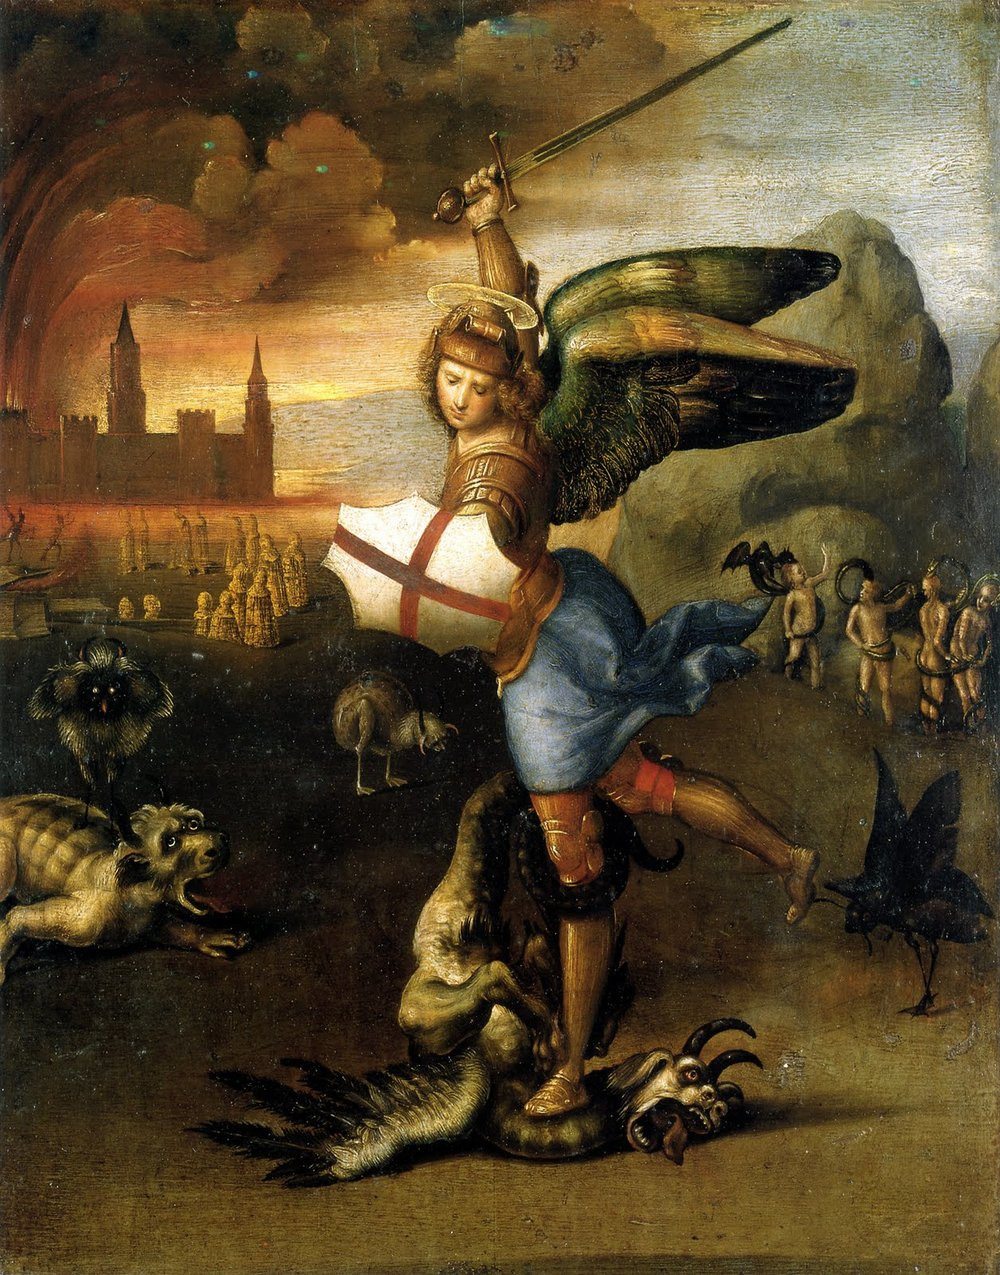 raphael-st-michael-and-the-dragon-3465.jpg